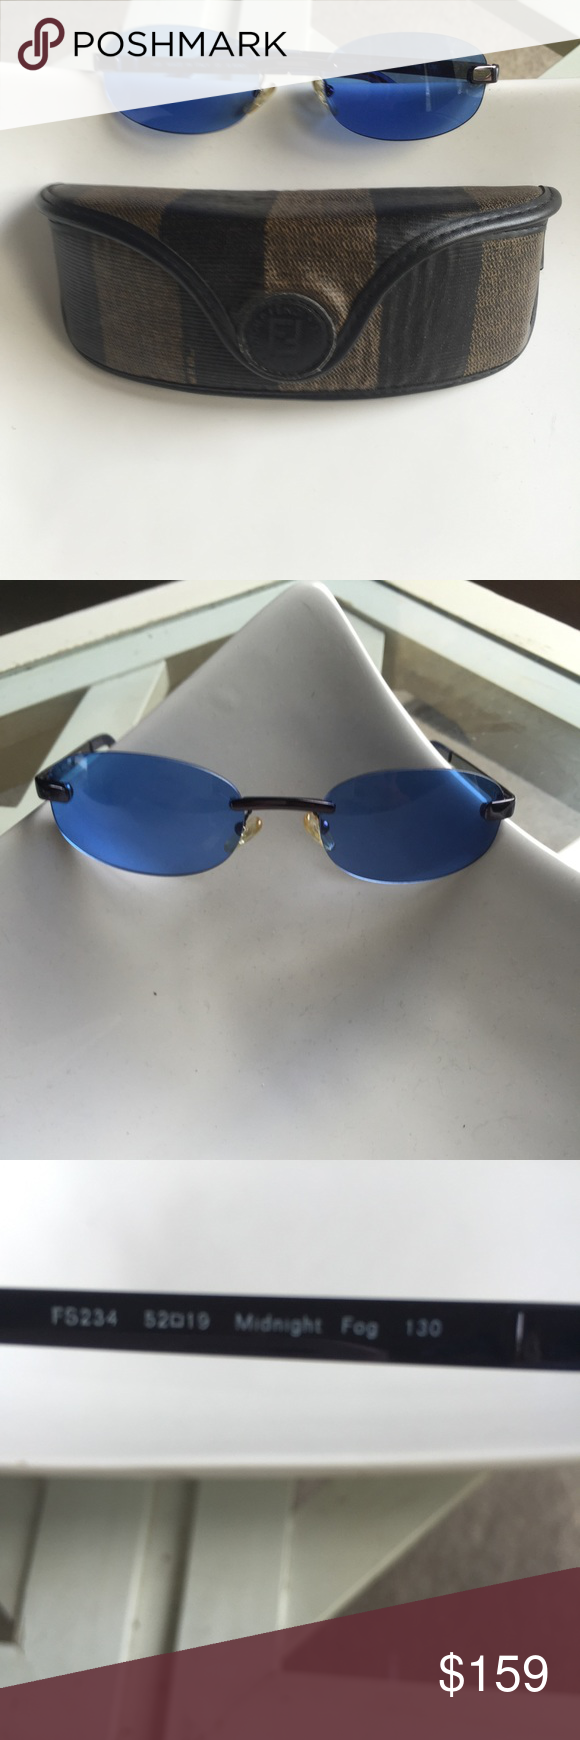 Fendi sunglasses with Fendi case Authentic Fendi sunglasses and case.  Vintage.  Excellent condition.  Sold together. NO TRADES.  Buy 'em today enjoy for years! Fendi Accessories Glasses